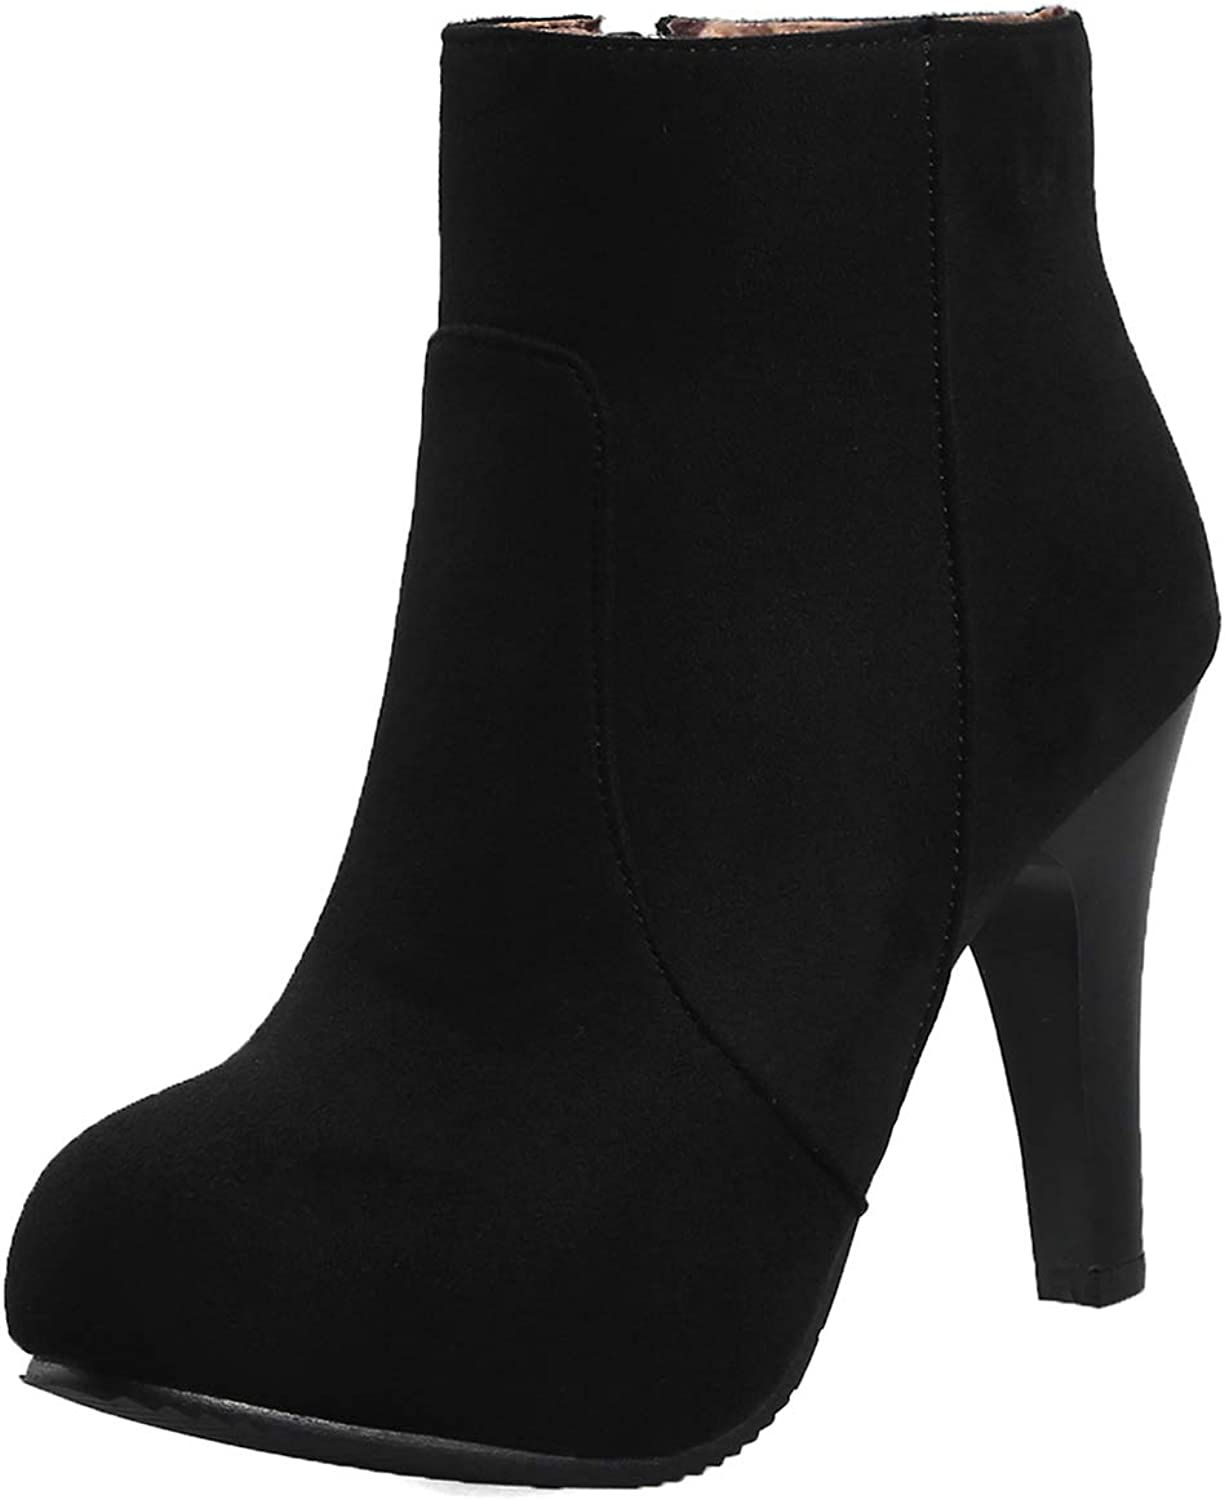 Women's Booties, Stiletto Heel Pointed Fashion Boots Ladies Fall Winter Waterproof Platform Martin Boots & Ankle Boots Black, bluee, pink Red (color   B, Size   36)